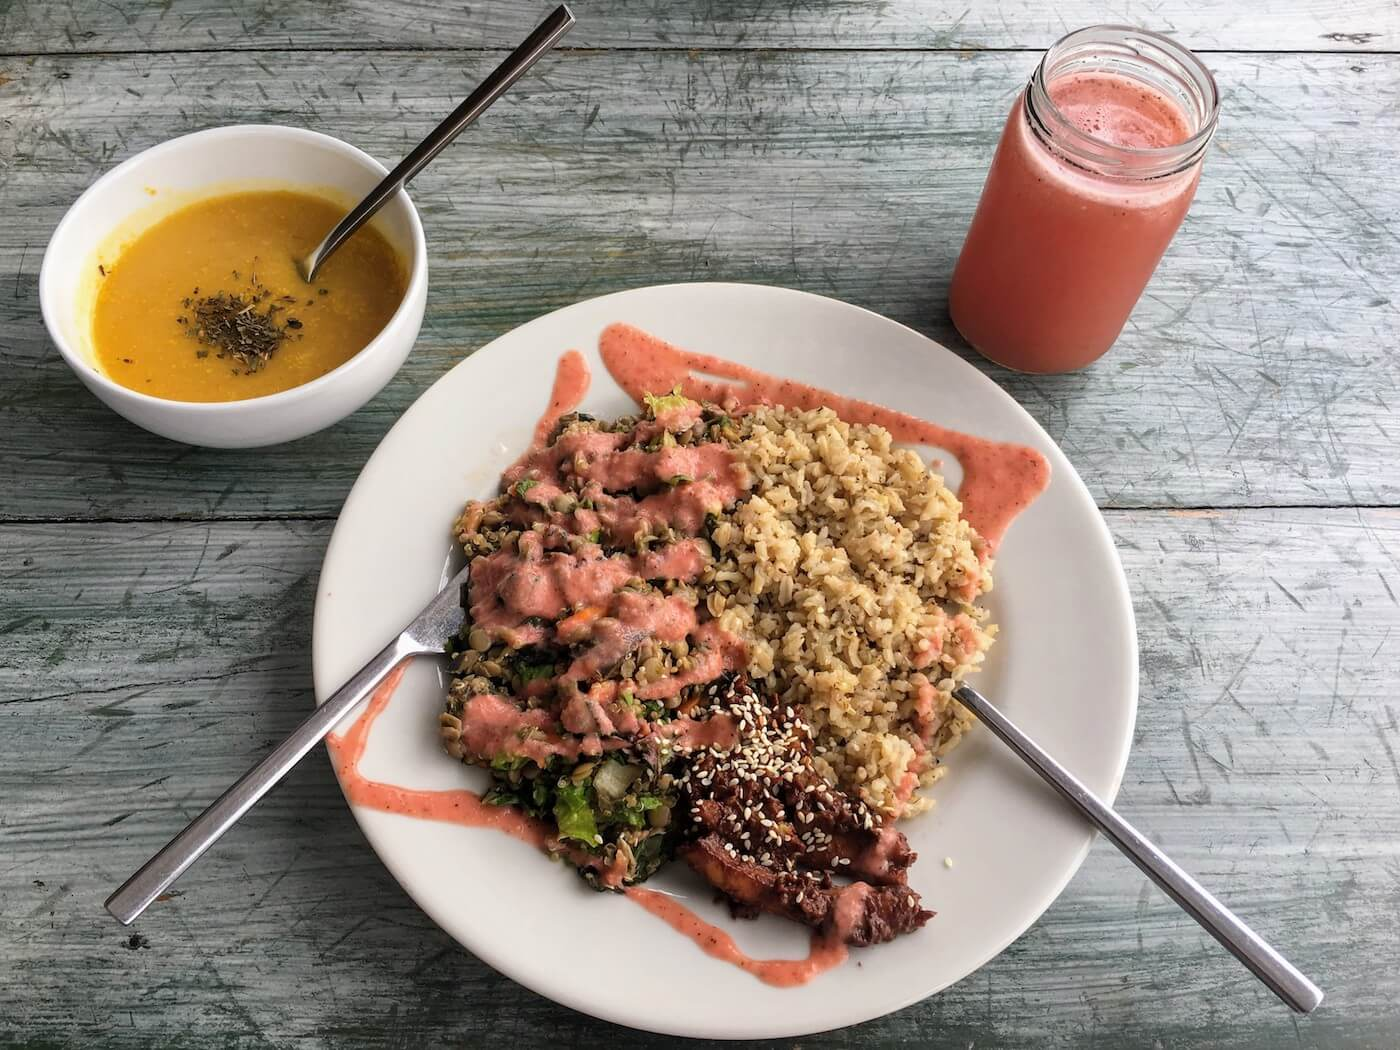 Dharma Vegan Restaurant's soup, menu del dia, and juice pictured from above